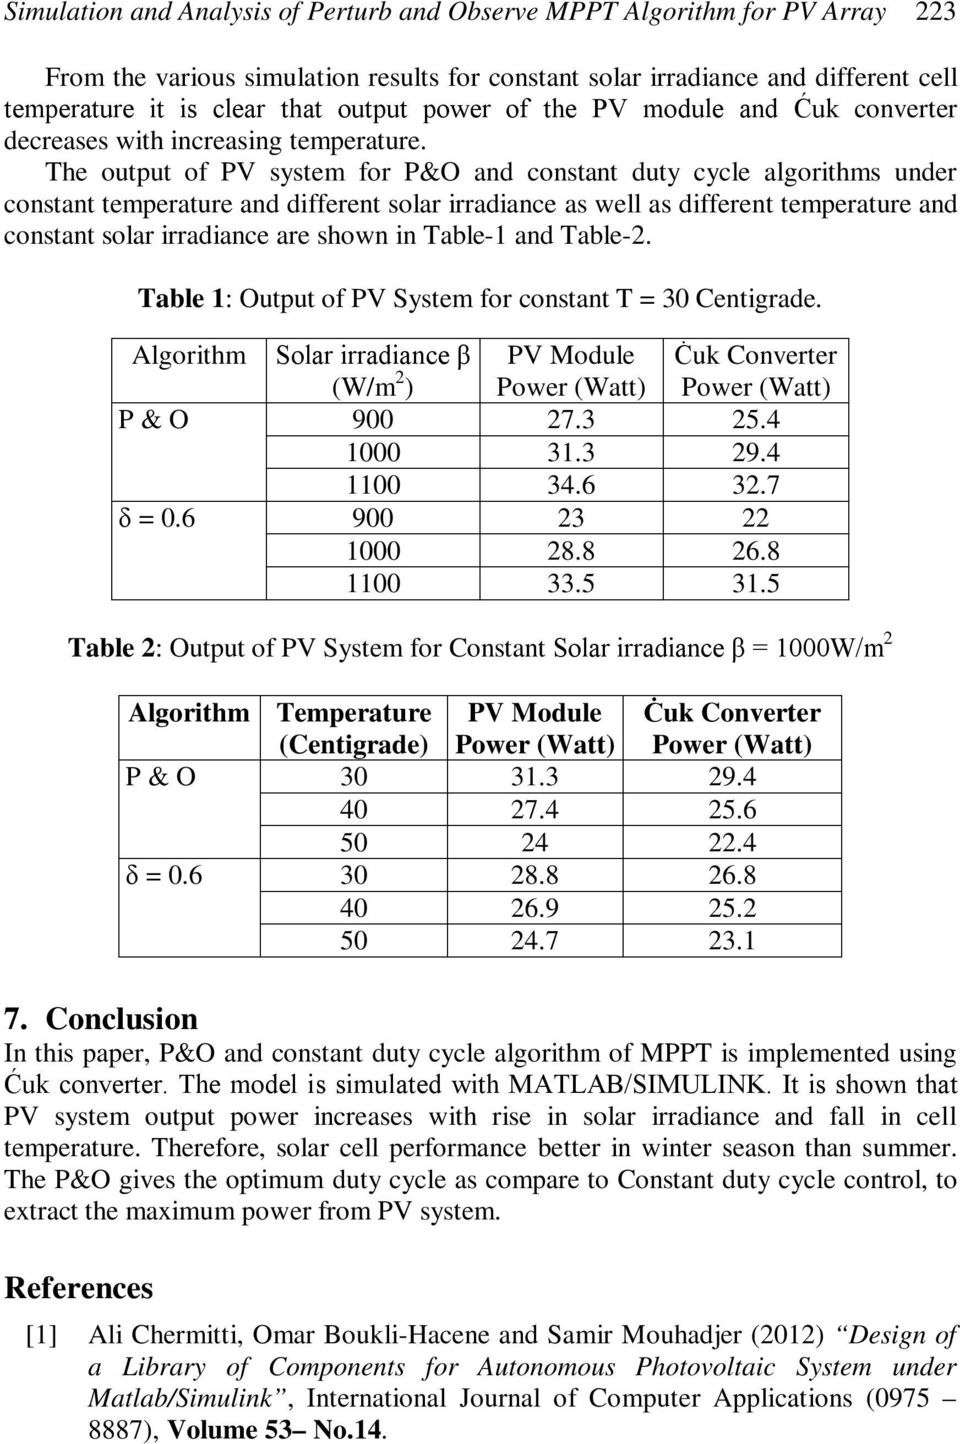 The output of PV system for P&O and constant duty cycle algorithms under constant temperature and different solar irradiance as well as different temperature and constant solar irradiance are shown